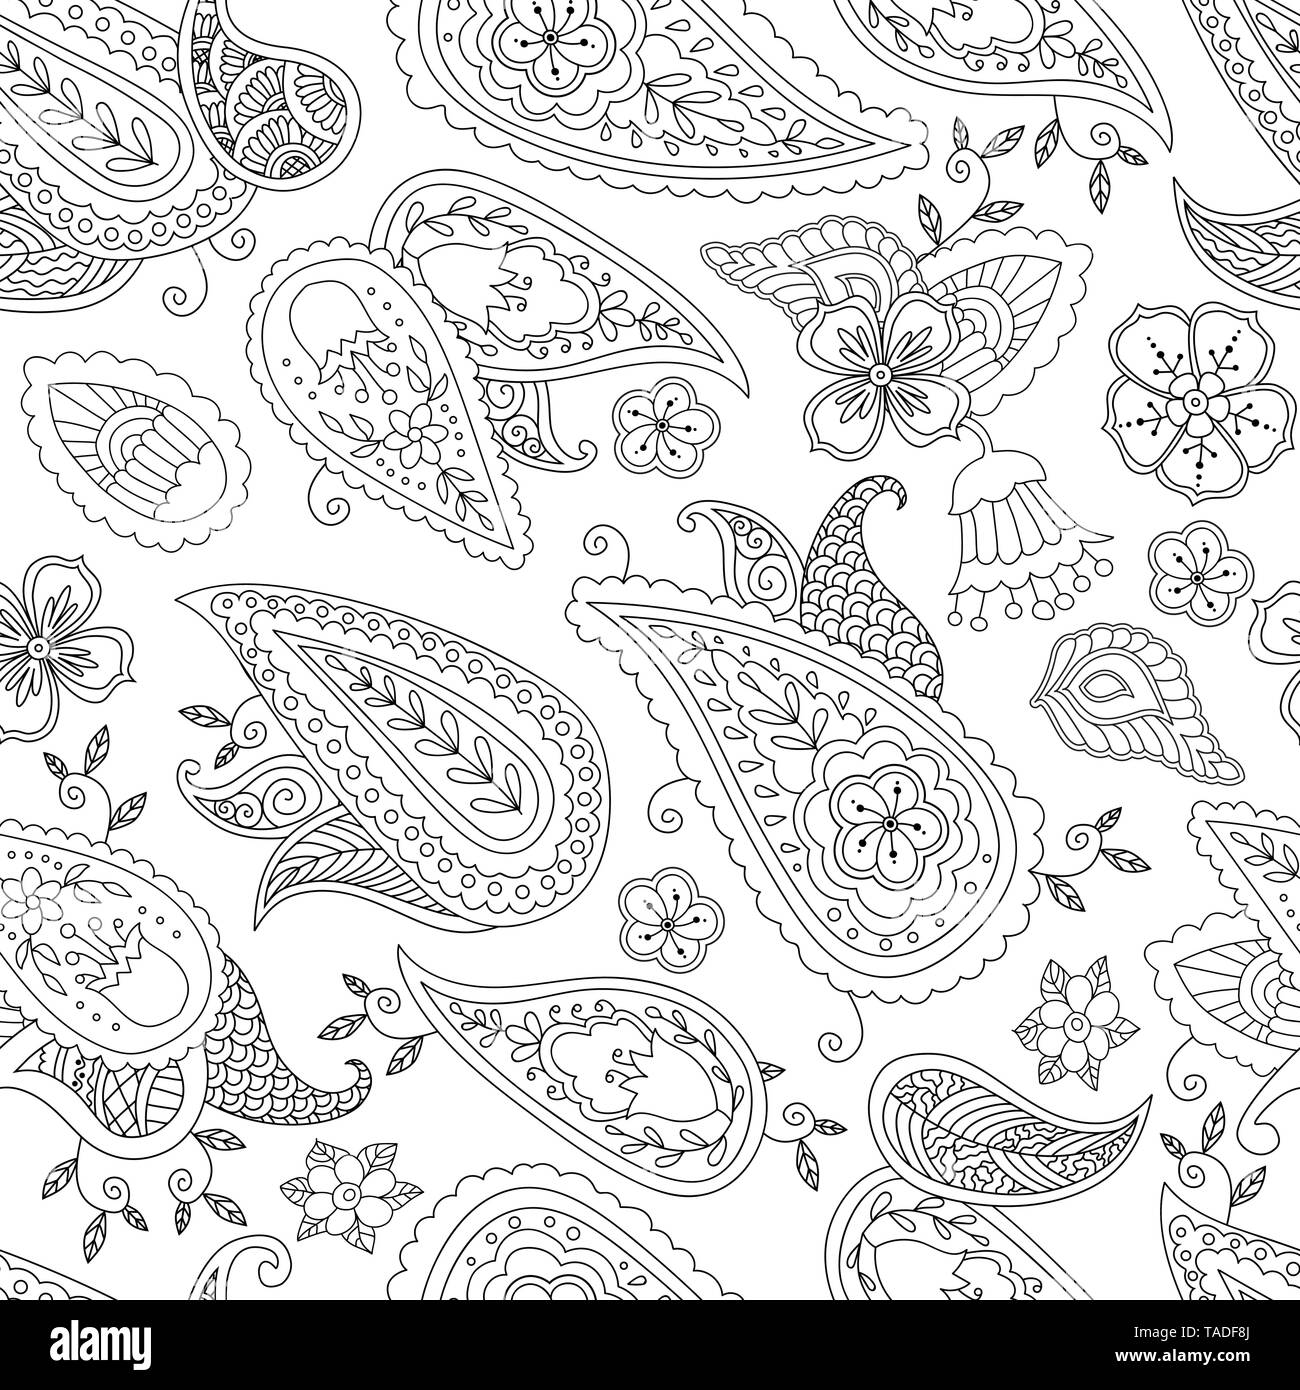 Abstract Hand Drawn Outline Doodle Ornament Seamless Pattern With Flowers And Paisley Coloring Book For Adult And Older Children Stock Vector Image Art Alamy